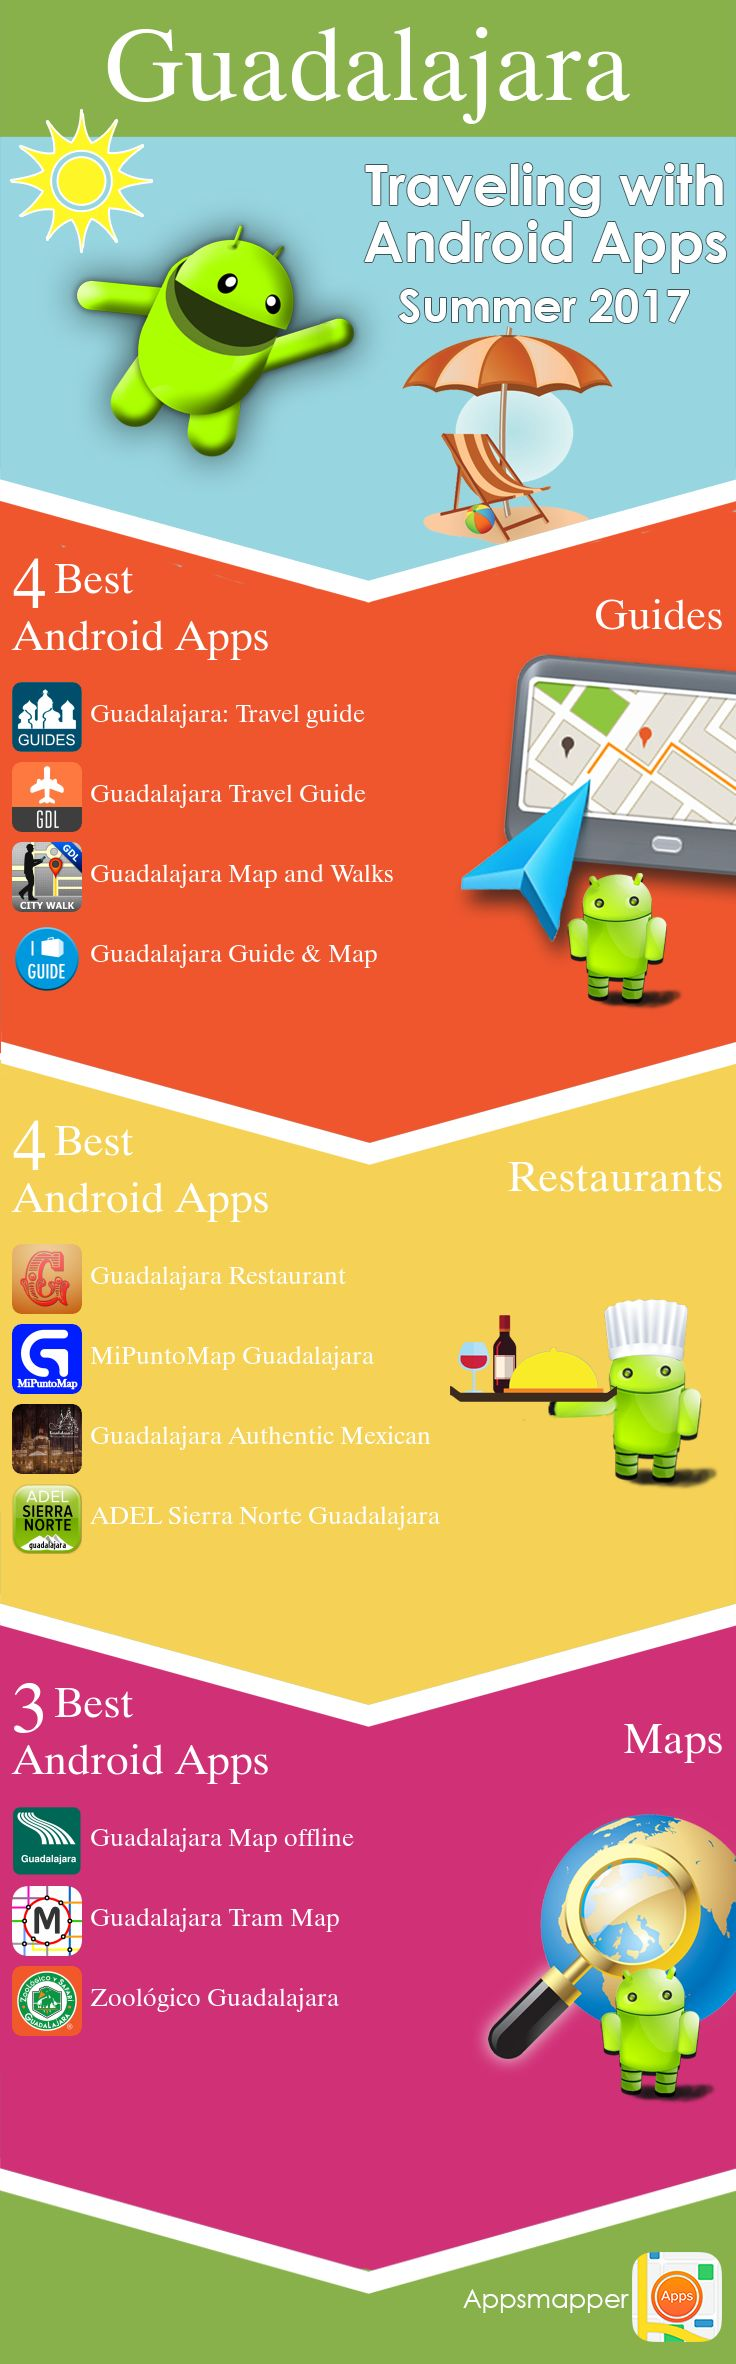 Guadalajara Android apps: Travel Guides, Maps, Transportation, Biking, Museums, Parking, Sport and apps for Students.